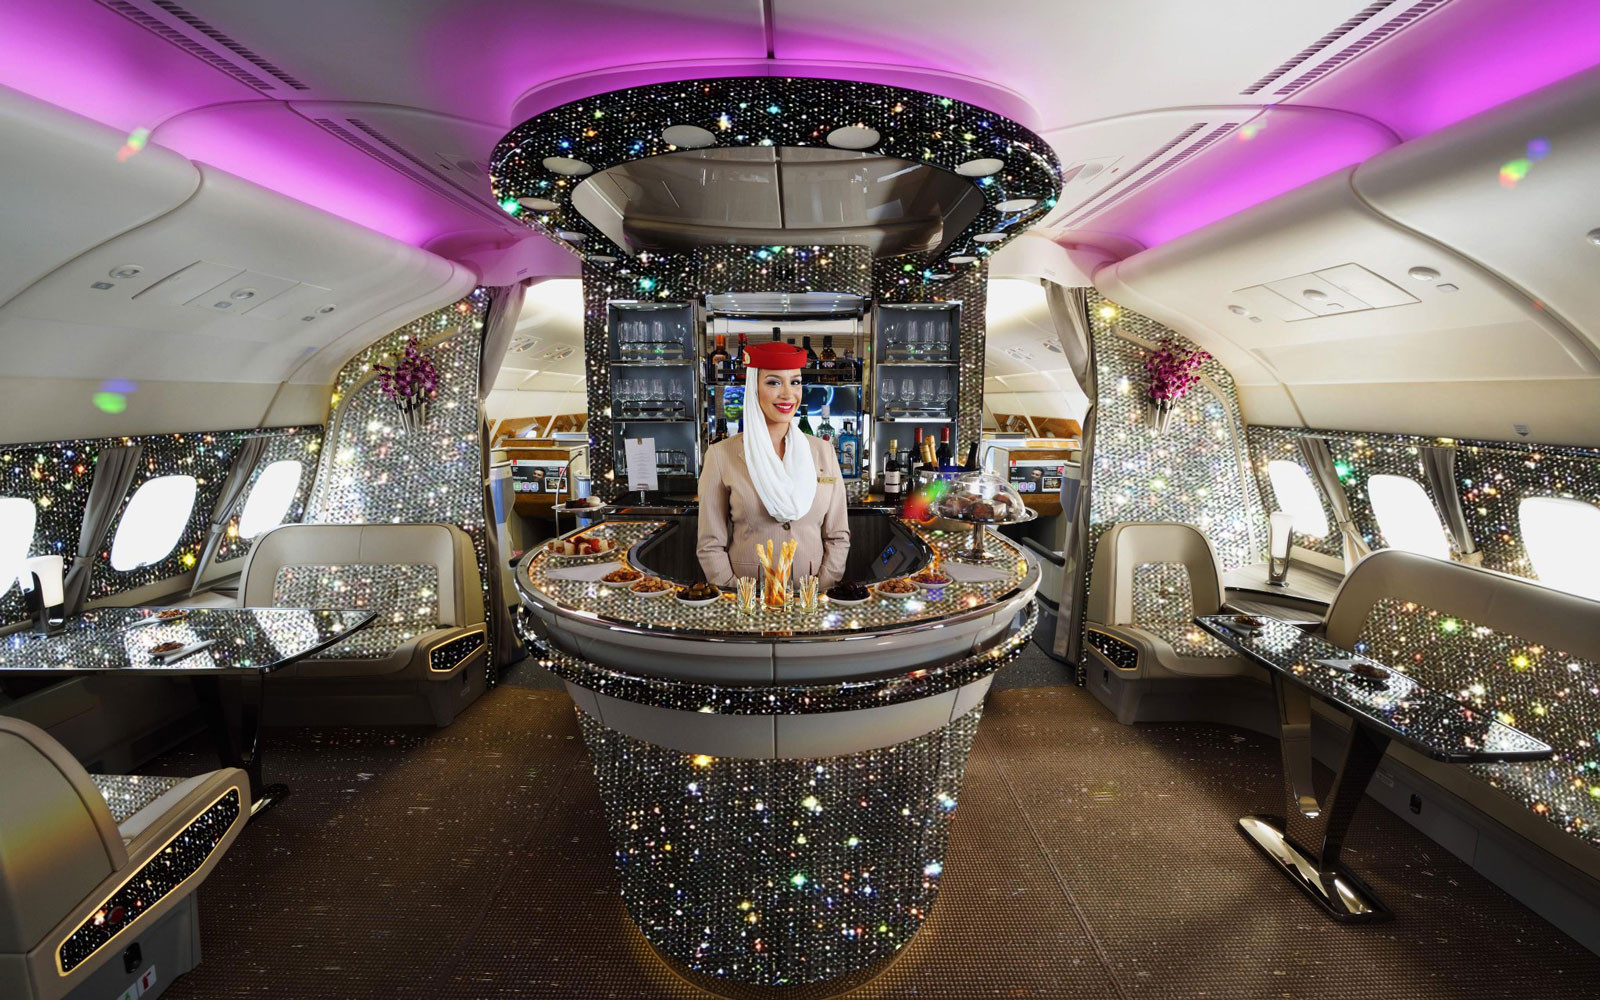 Emirates Just Released a Photo of Its First Class Bar Blinged Out in 500,000 Crystals